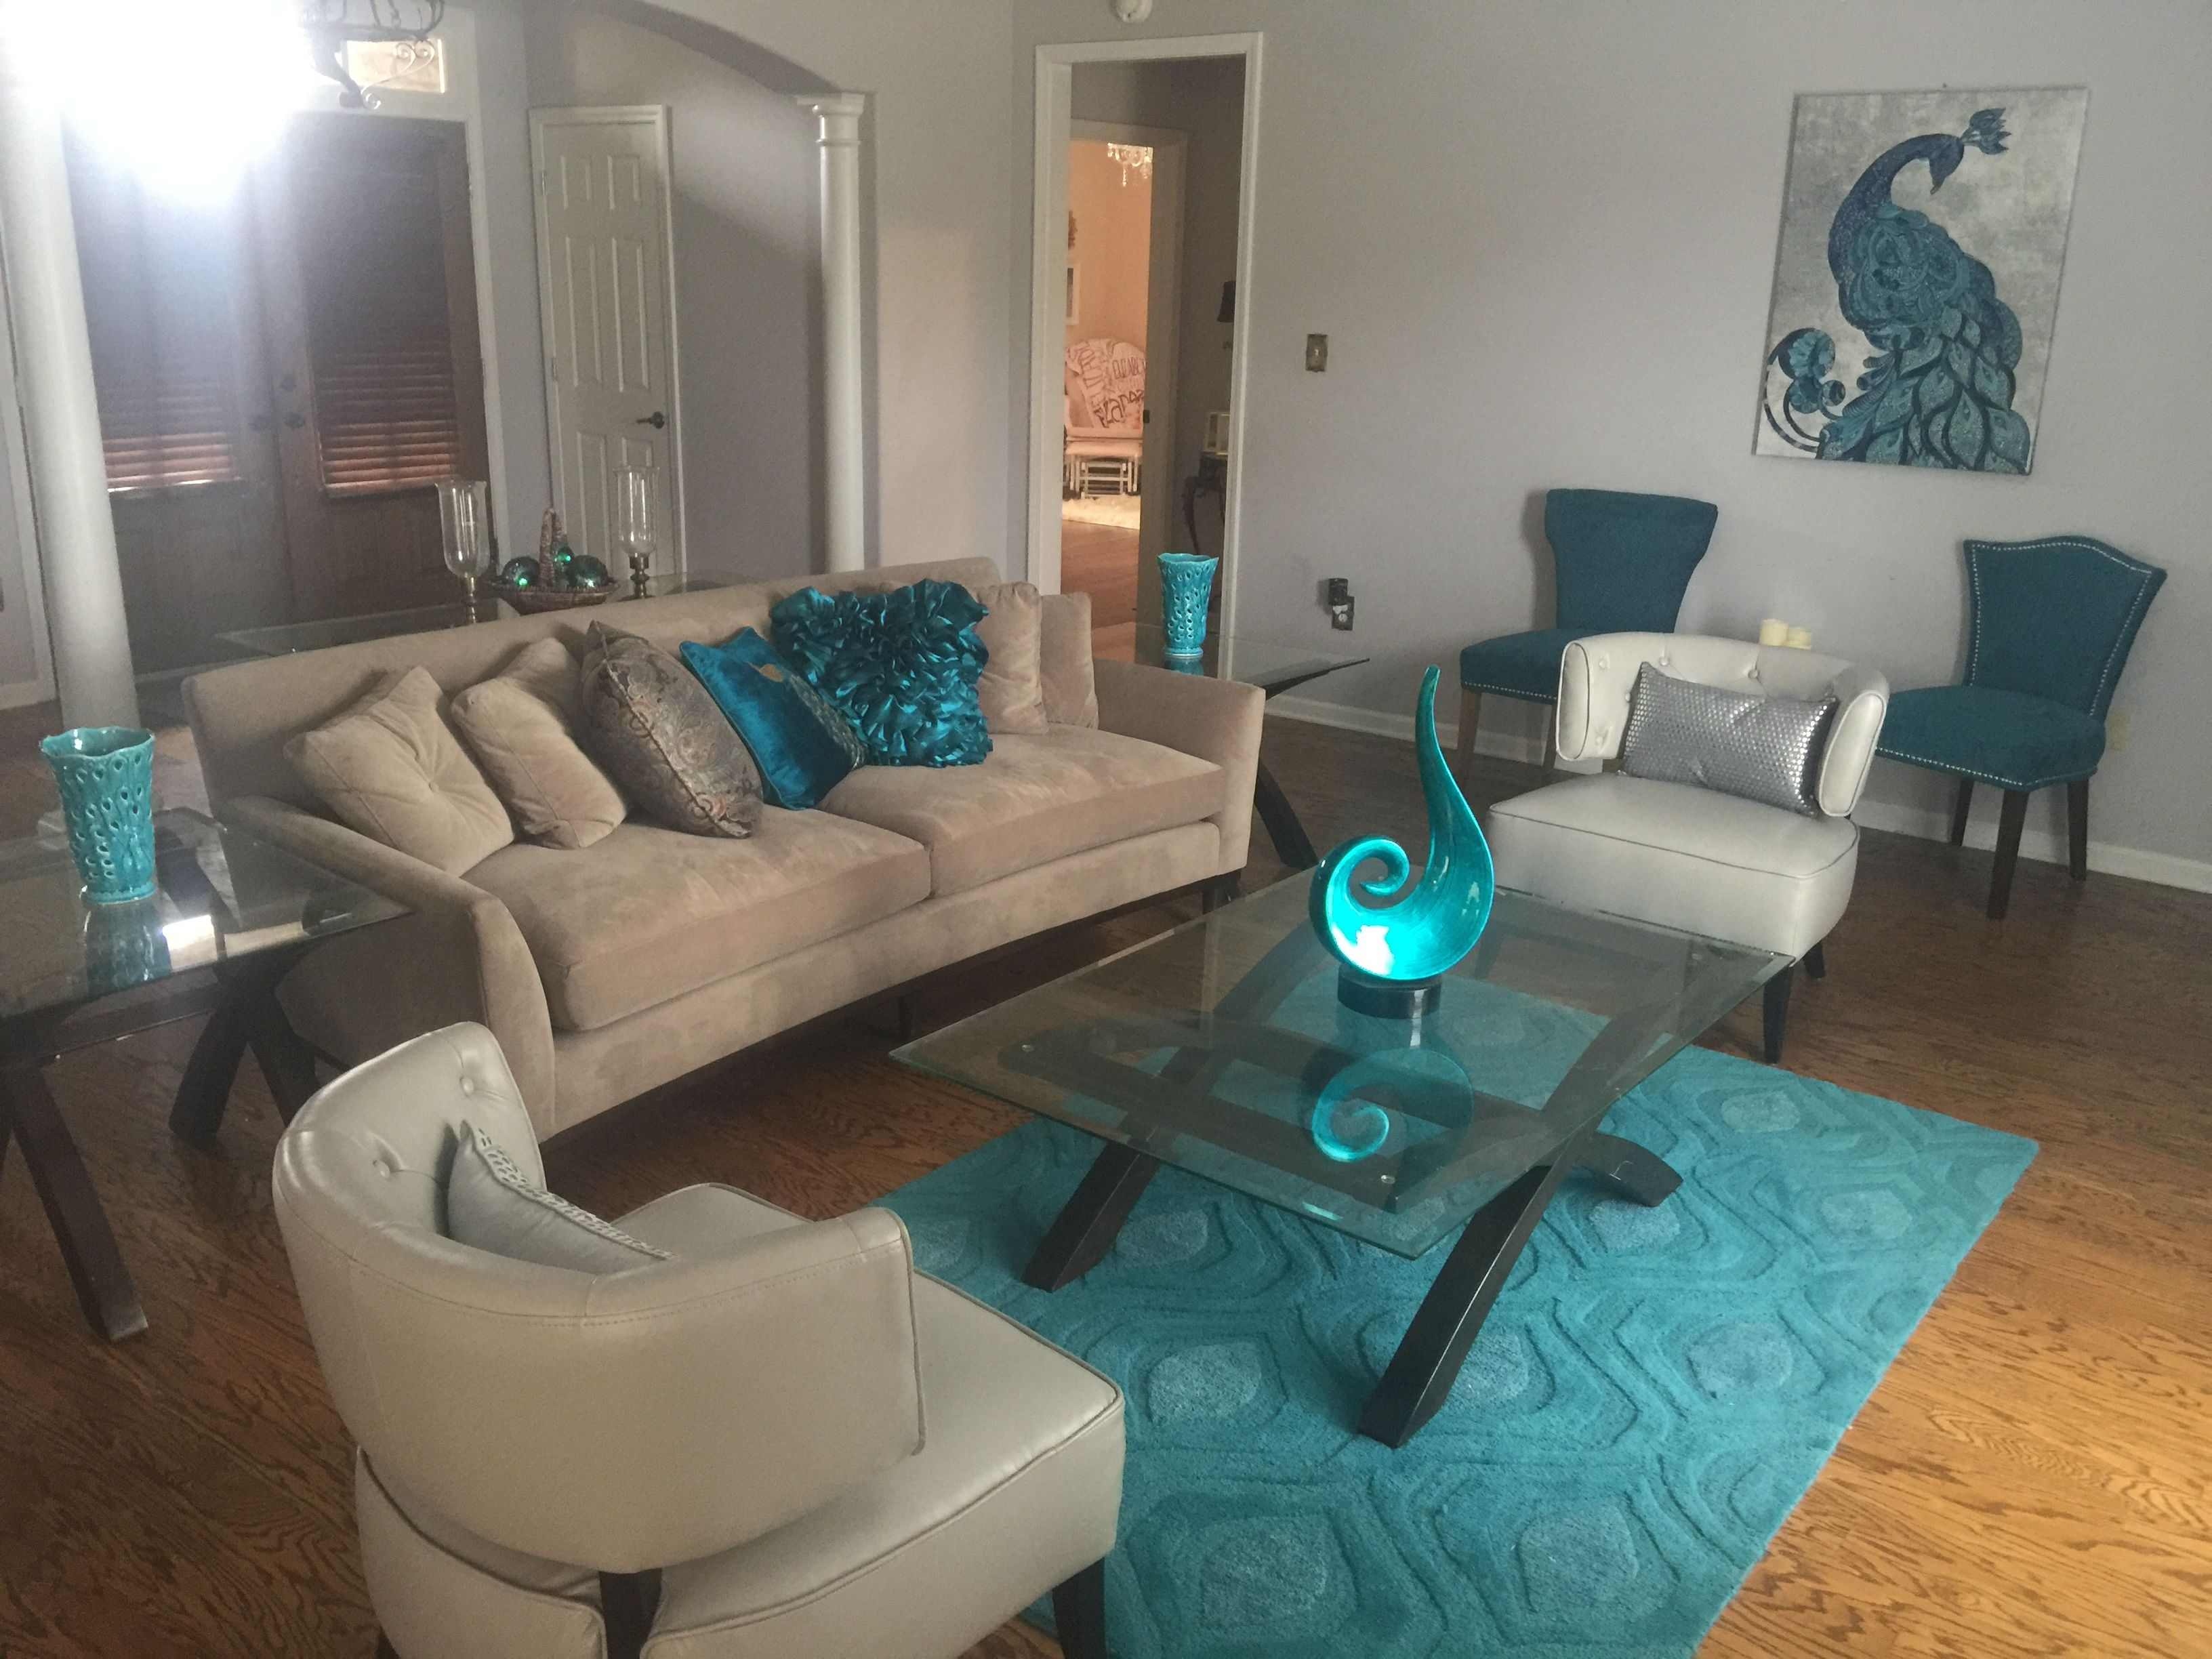 Turquoise Teal Peacock Contemporary Modern Living Room Haverty 39 S Pier 1 Tuesday Morning Home